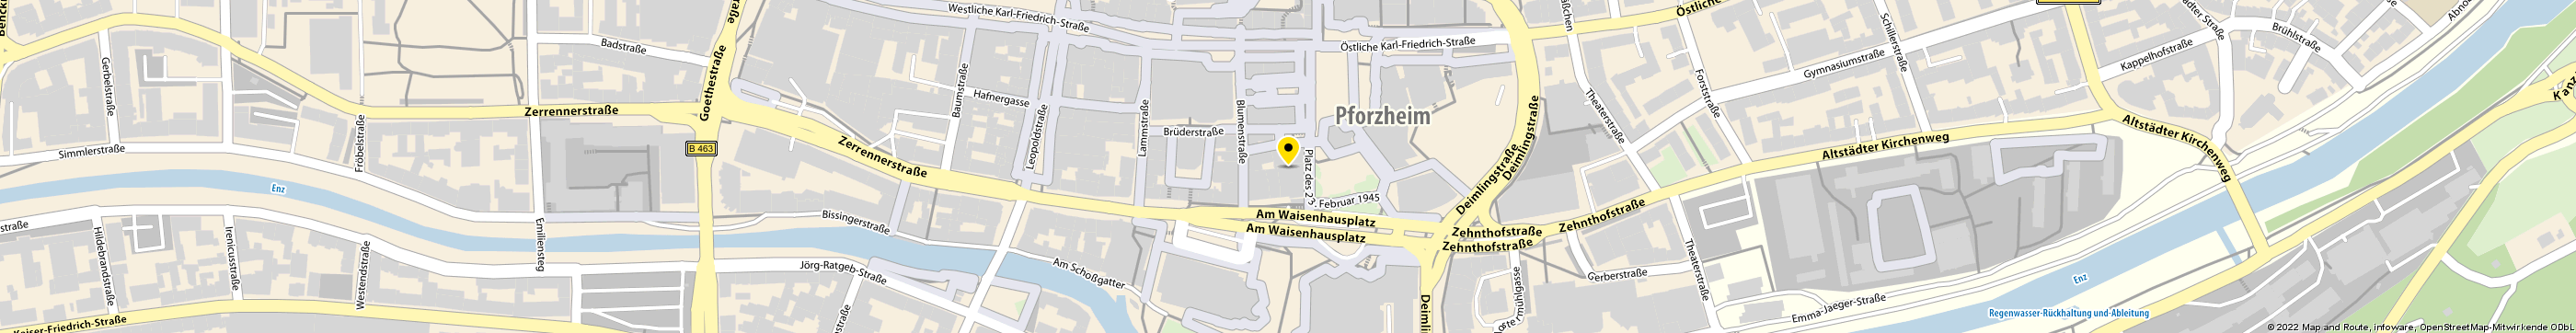 Glasnowitsch Pia Physio Plus in Pforzheim-Innenstadt Karte